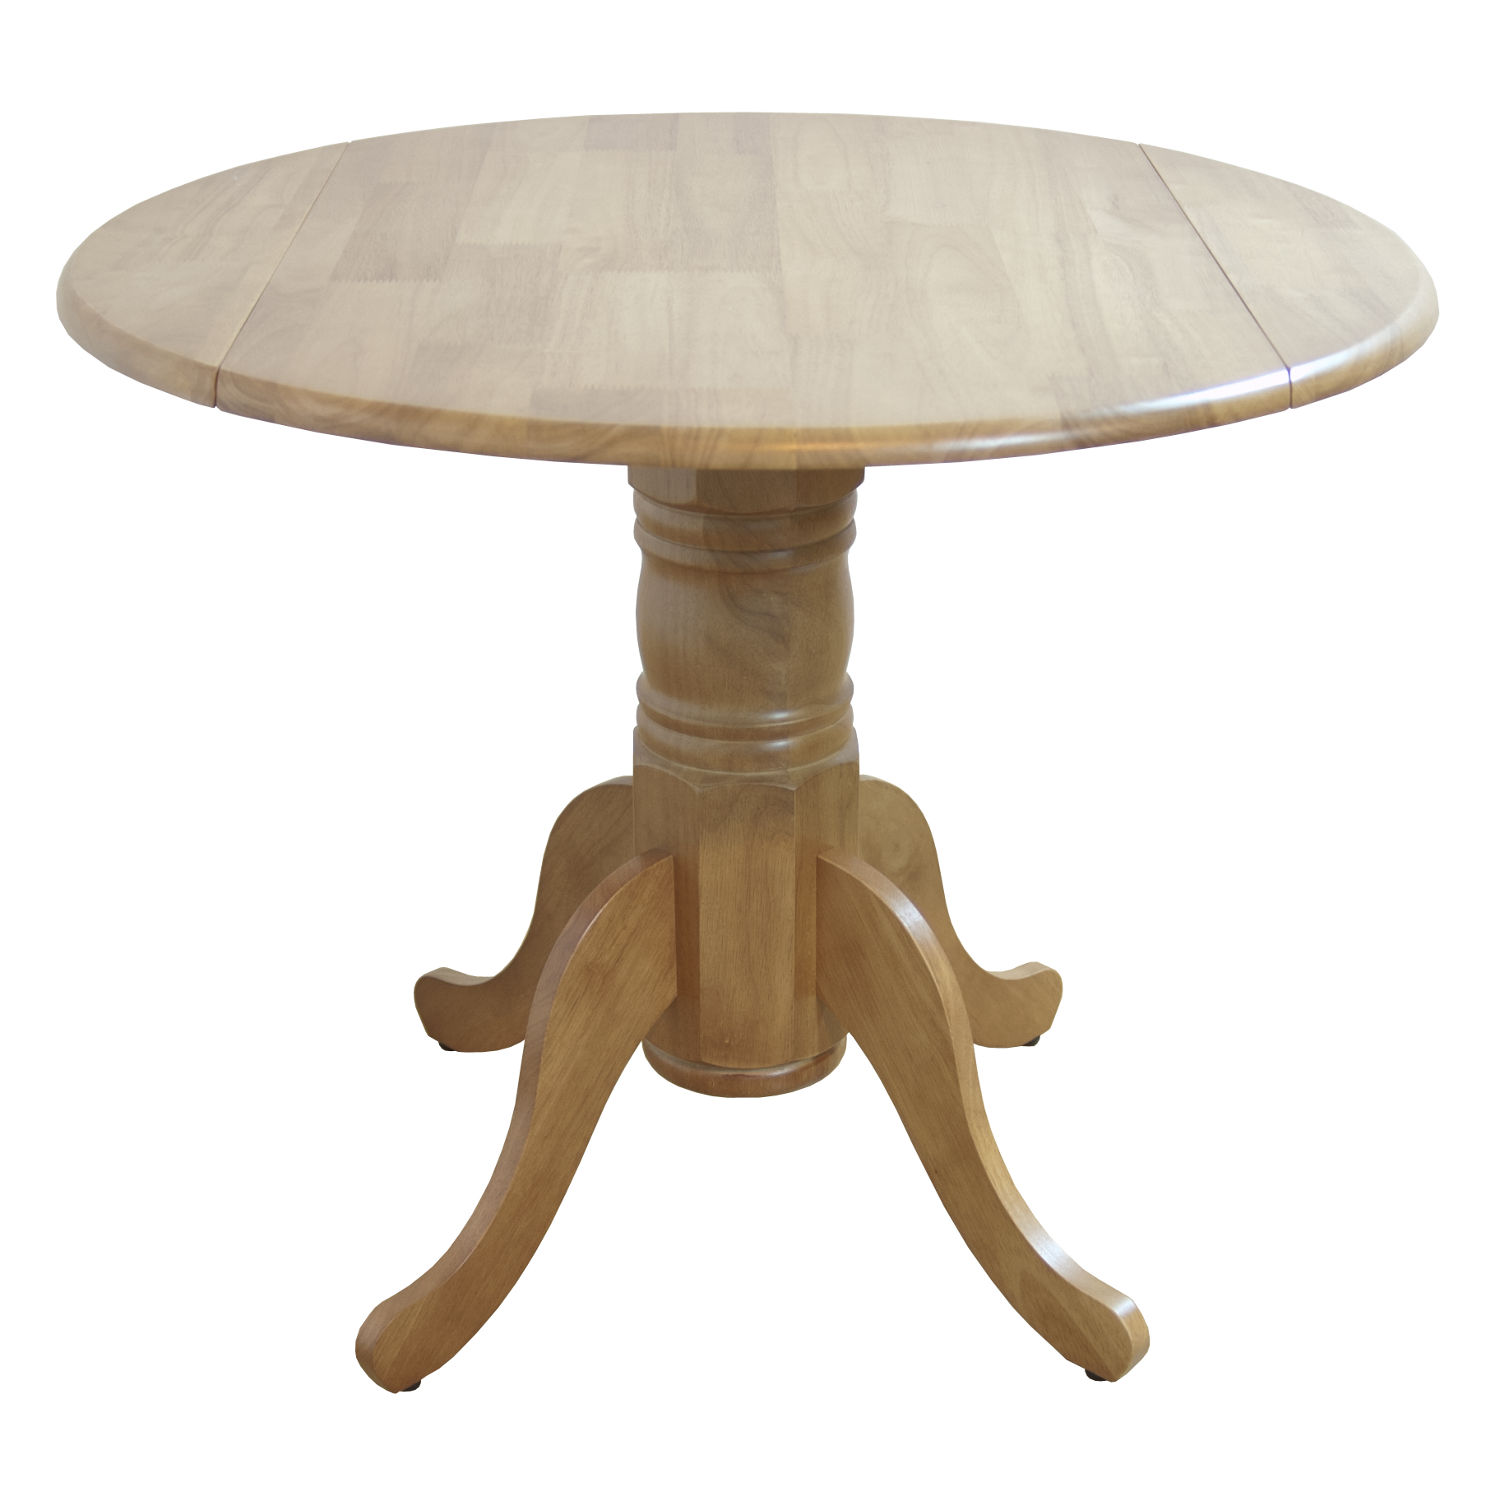 Drop leaf tables for small spaces homesfeed for Dining room tables drop leaf